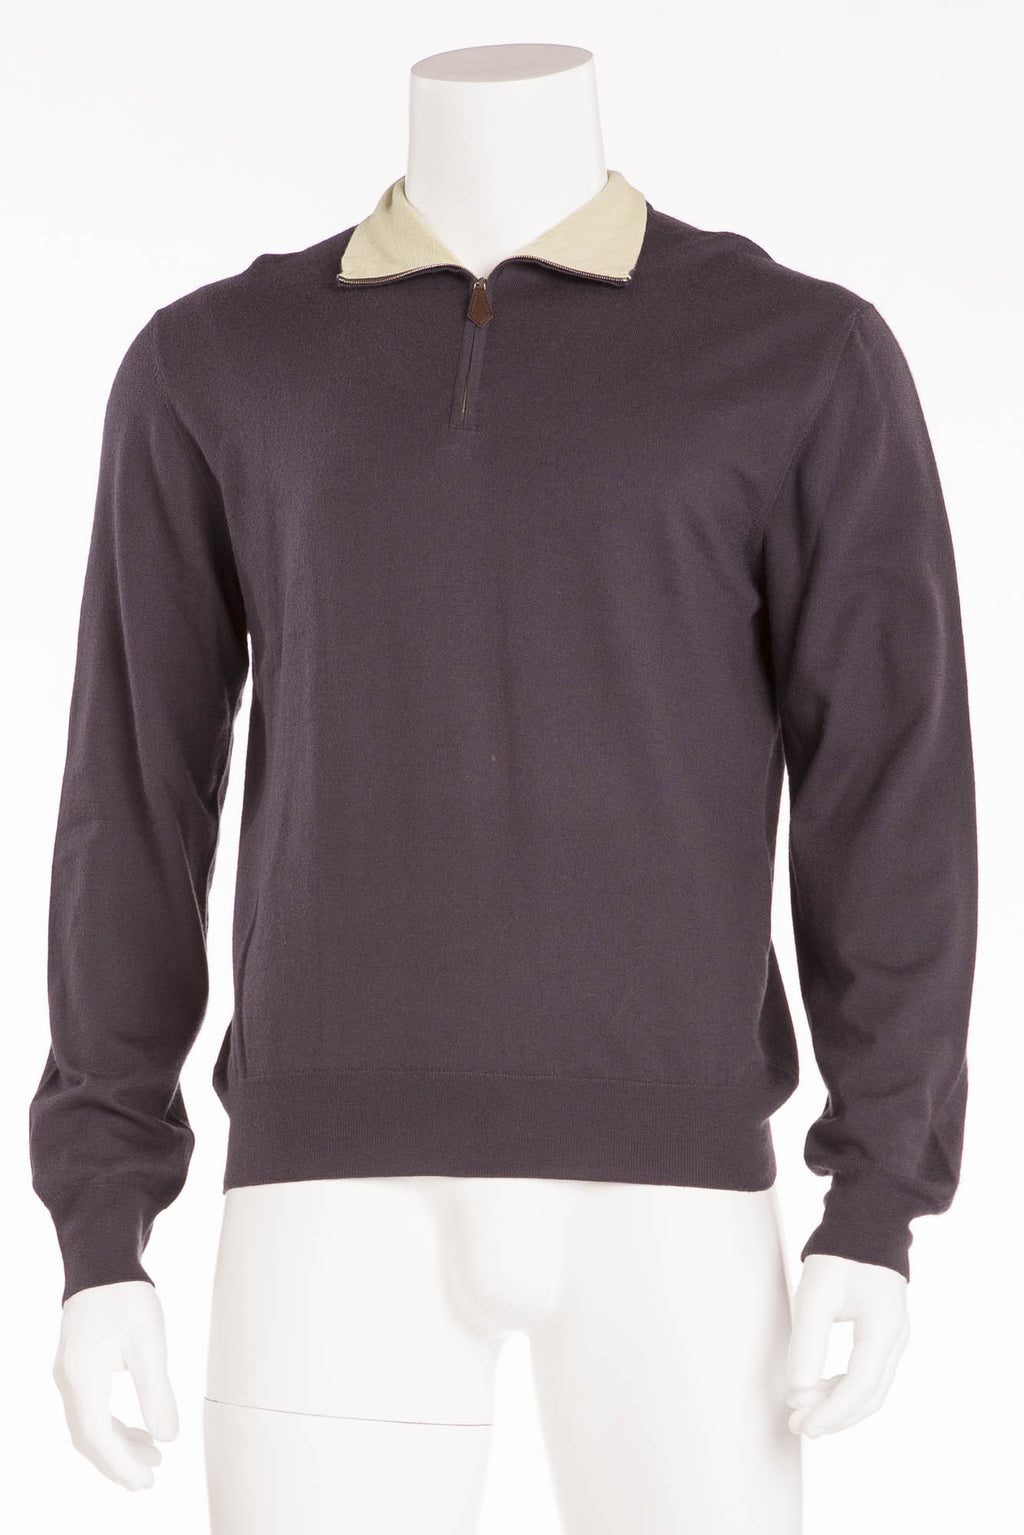 Hermes - Cashmere Zip Neck Sweater with Green Inner Collar - XL